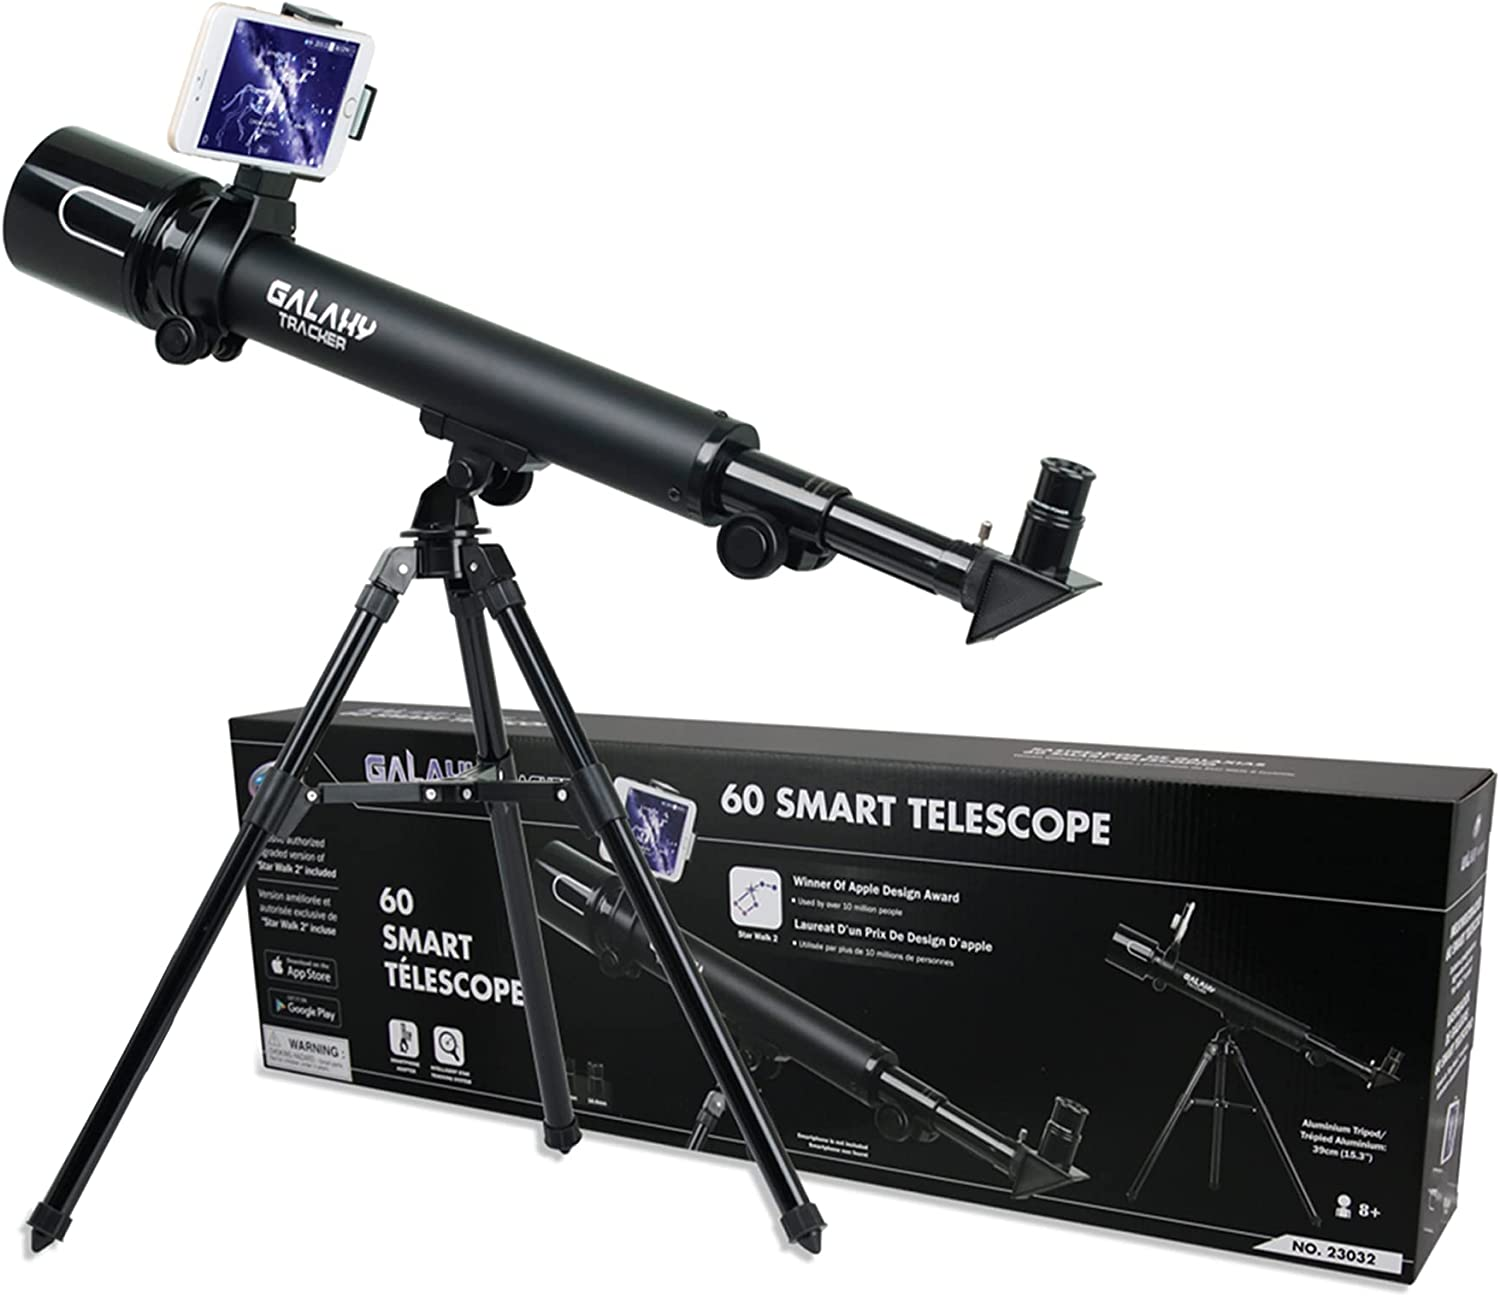 IDS Home Eastcolight 23032 Professional Galaxy Tracker Telescope 30/60 Power 50mm Astronomical Terrestrial Astronomy Telescope for Kid Beginners with Tripod